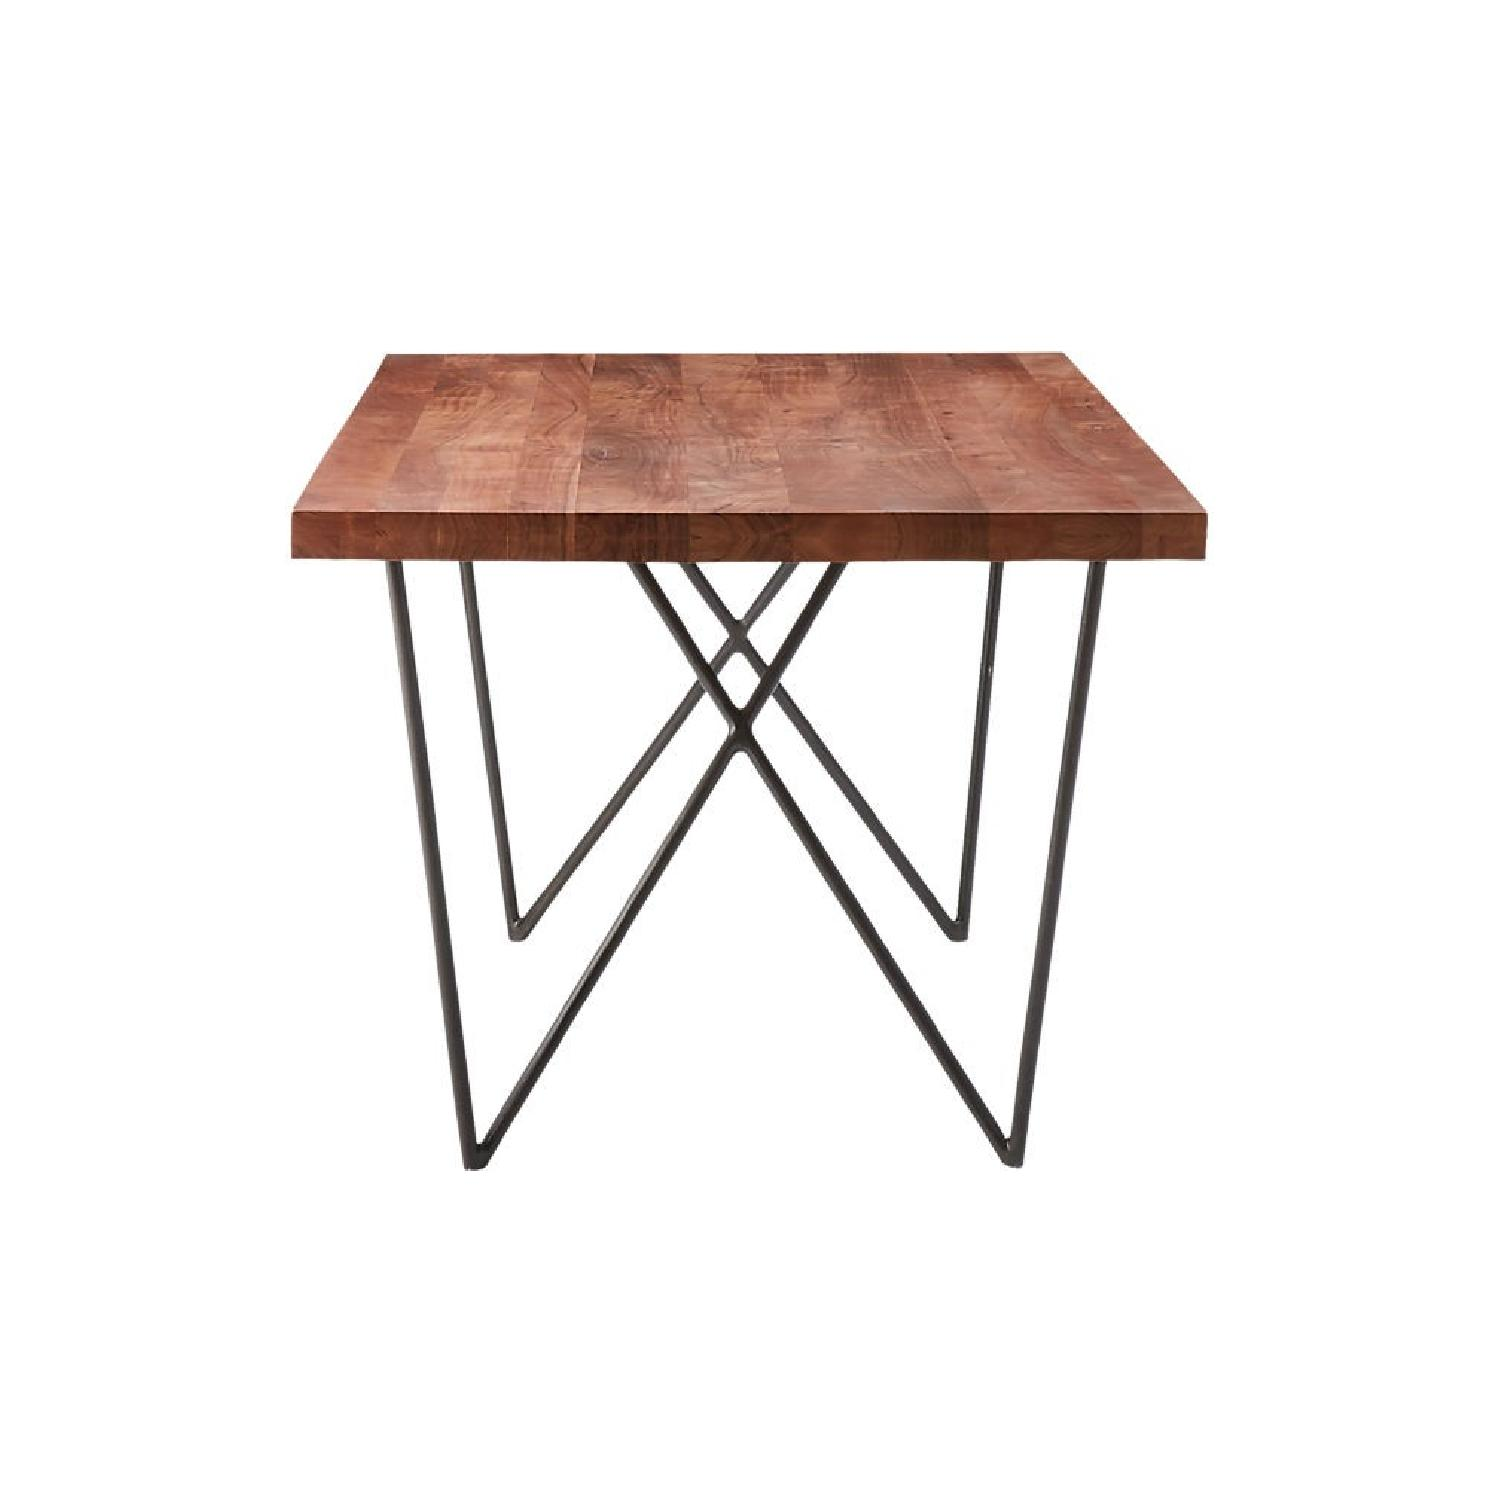 CB2 Dylan Dining Table - image-3